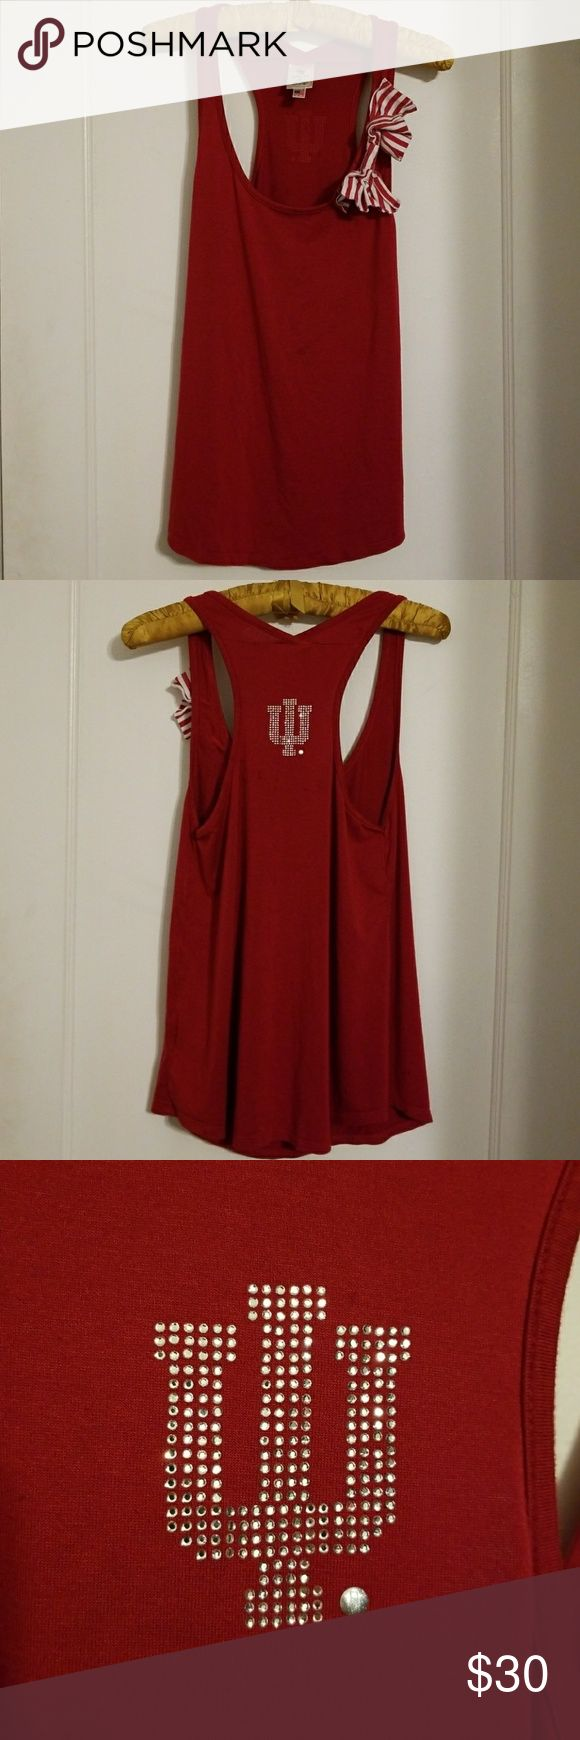 Meesh & Mia Indiana University bow tank top Meesh & Mia Indiana University Hoosier racerback bow tank top.   Made in the USA. Size Large but fits like a Medium. Super soft jersey material. Rhinestone IU logo on racerback.  In very good condition. Meesh & Mia Tops Tank Tops